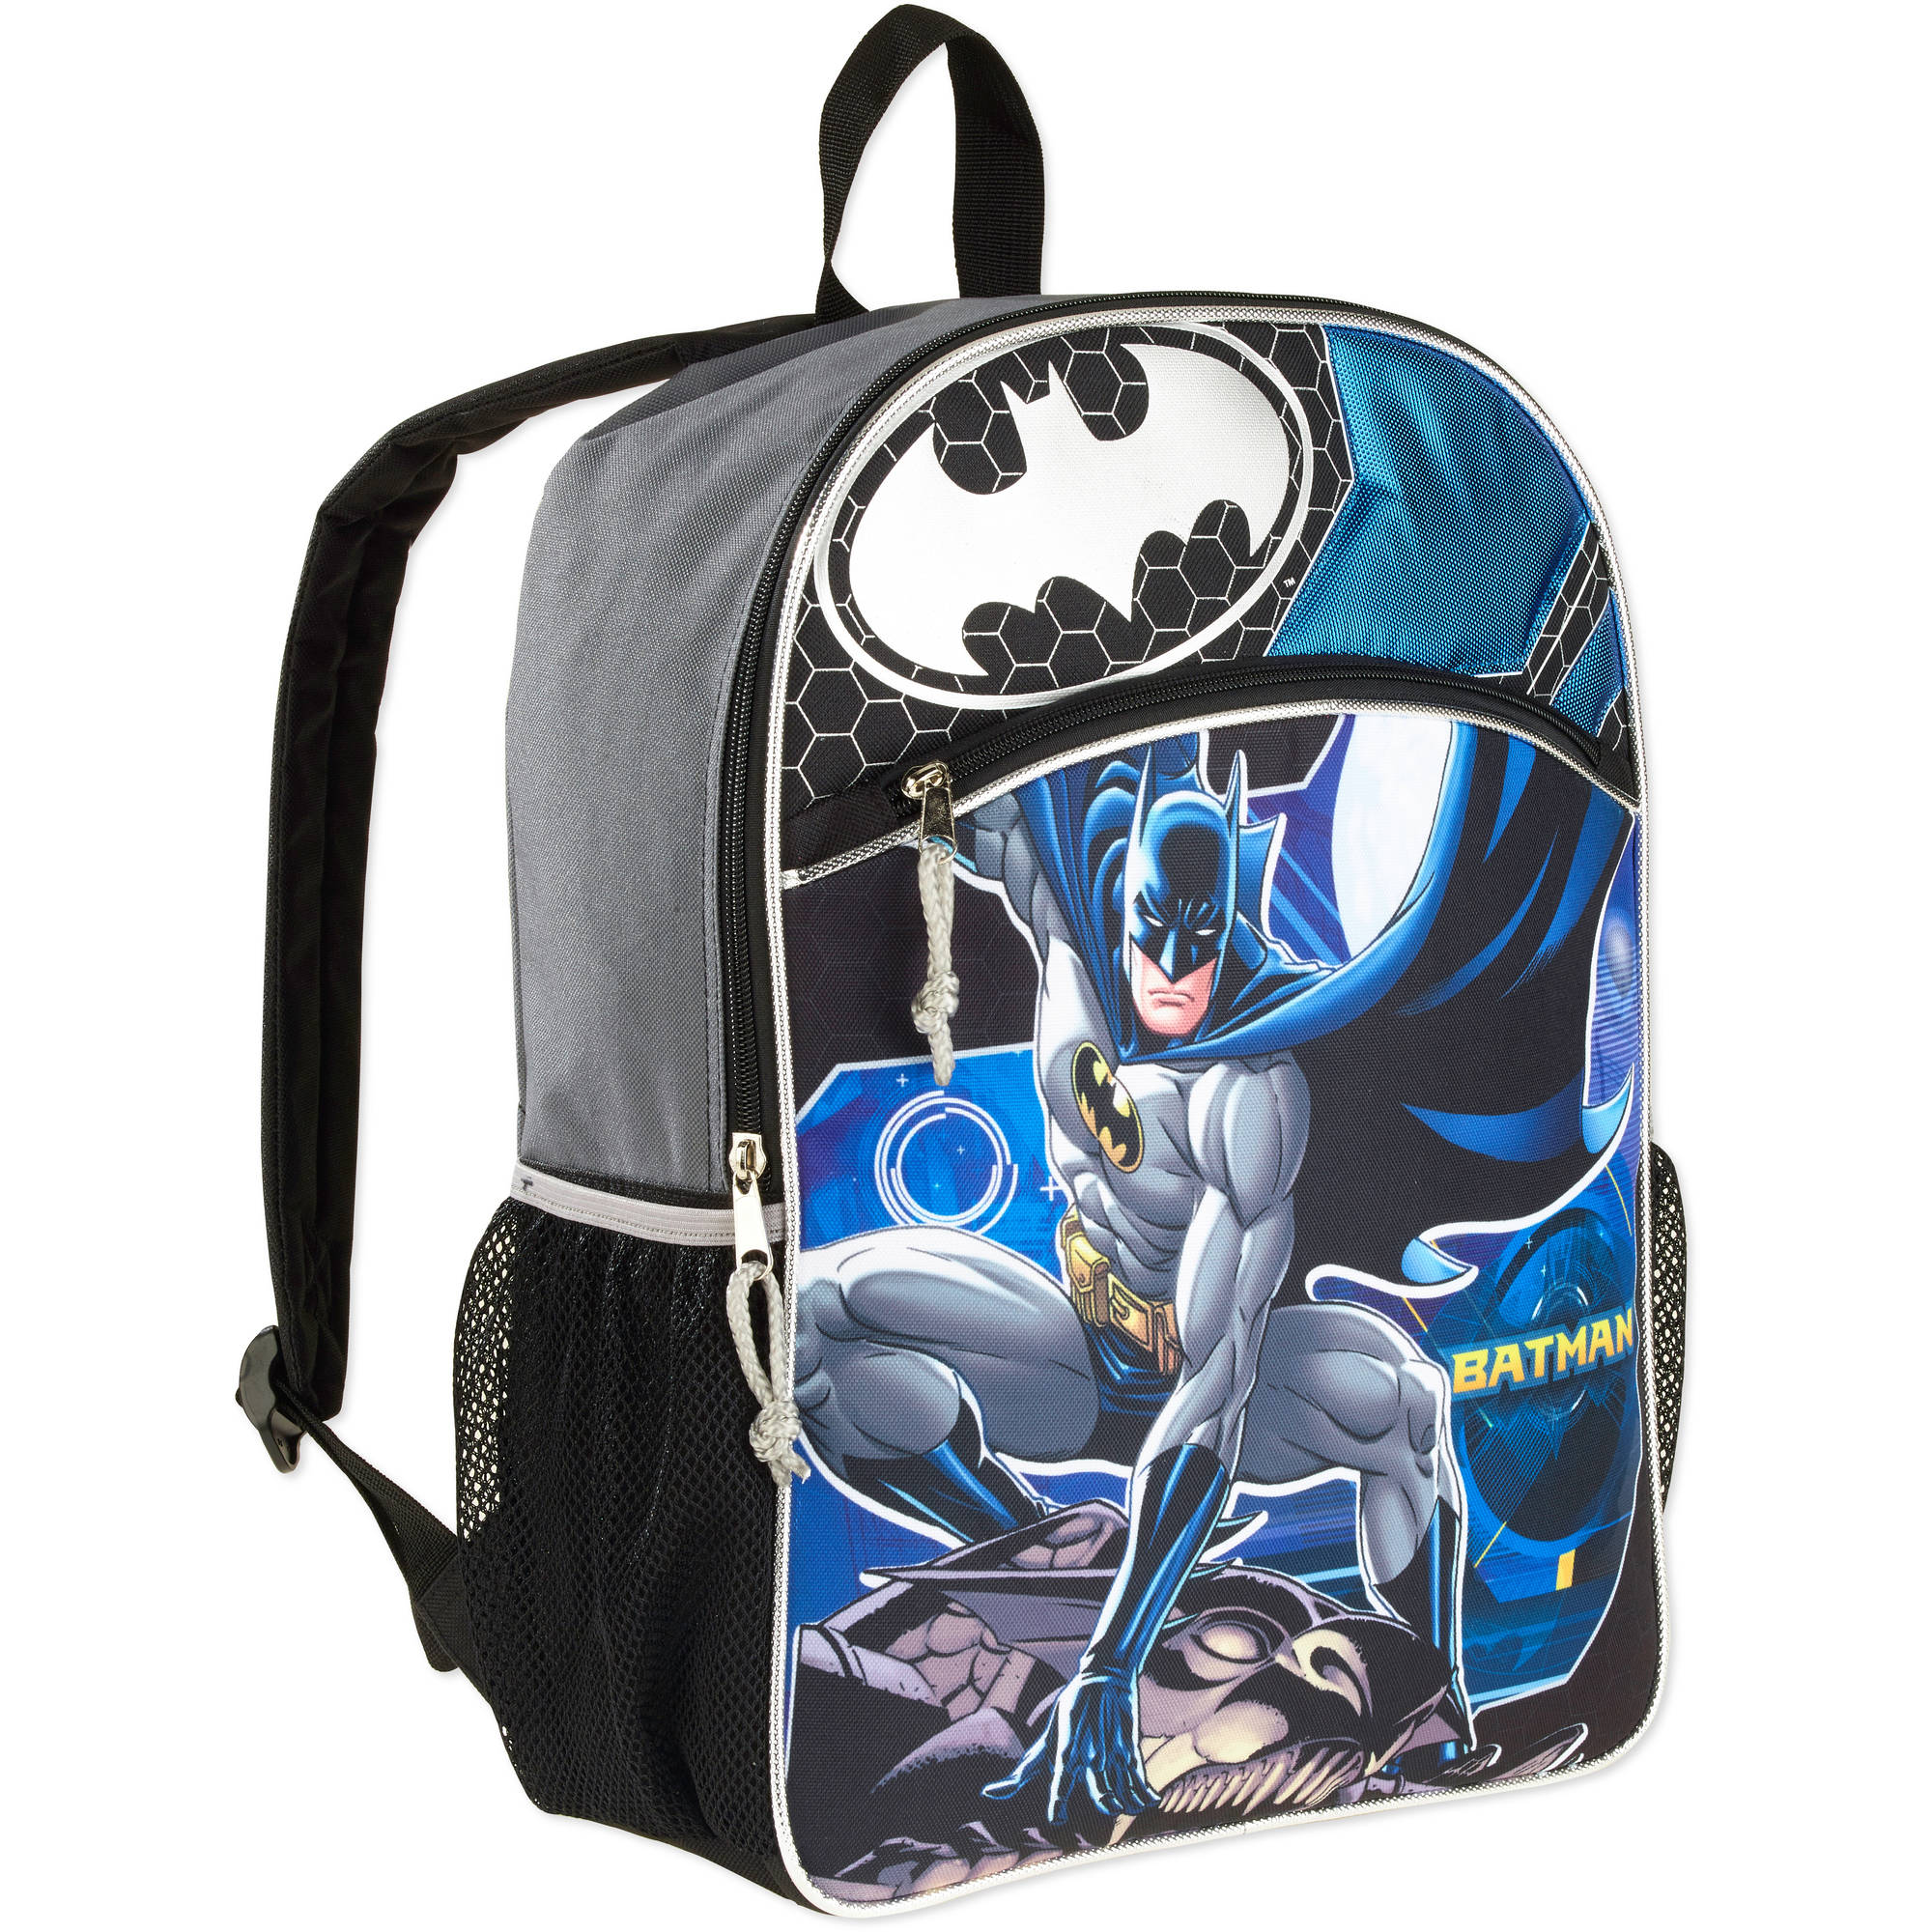 664df95a2587 Batman Kids Backpack - Walmart.com